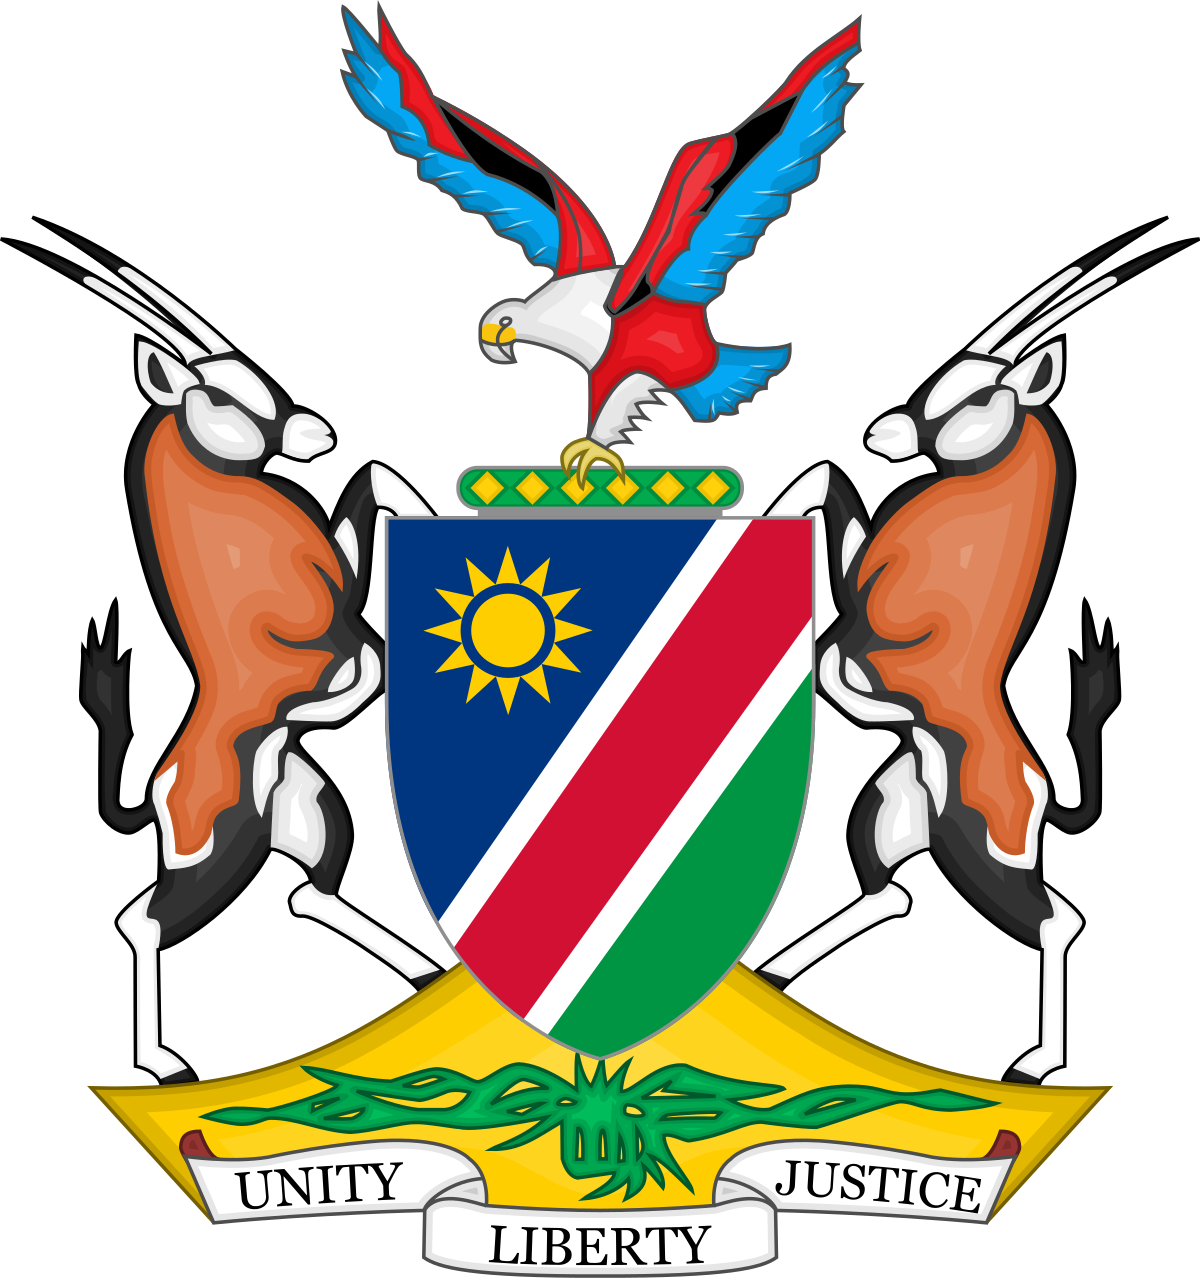 Pastor clipart prime minister. Constitution of namibia wikipedia